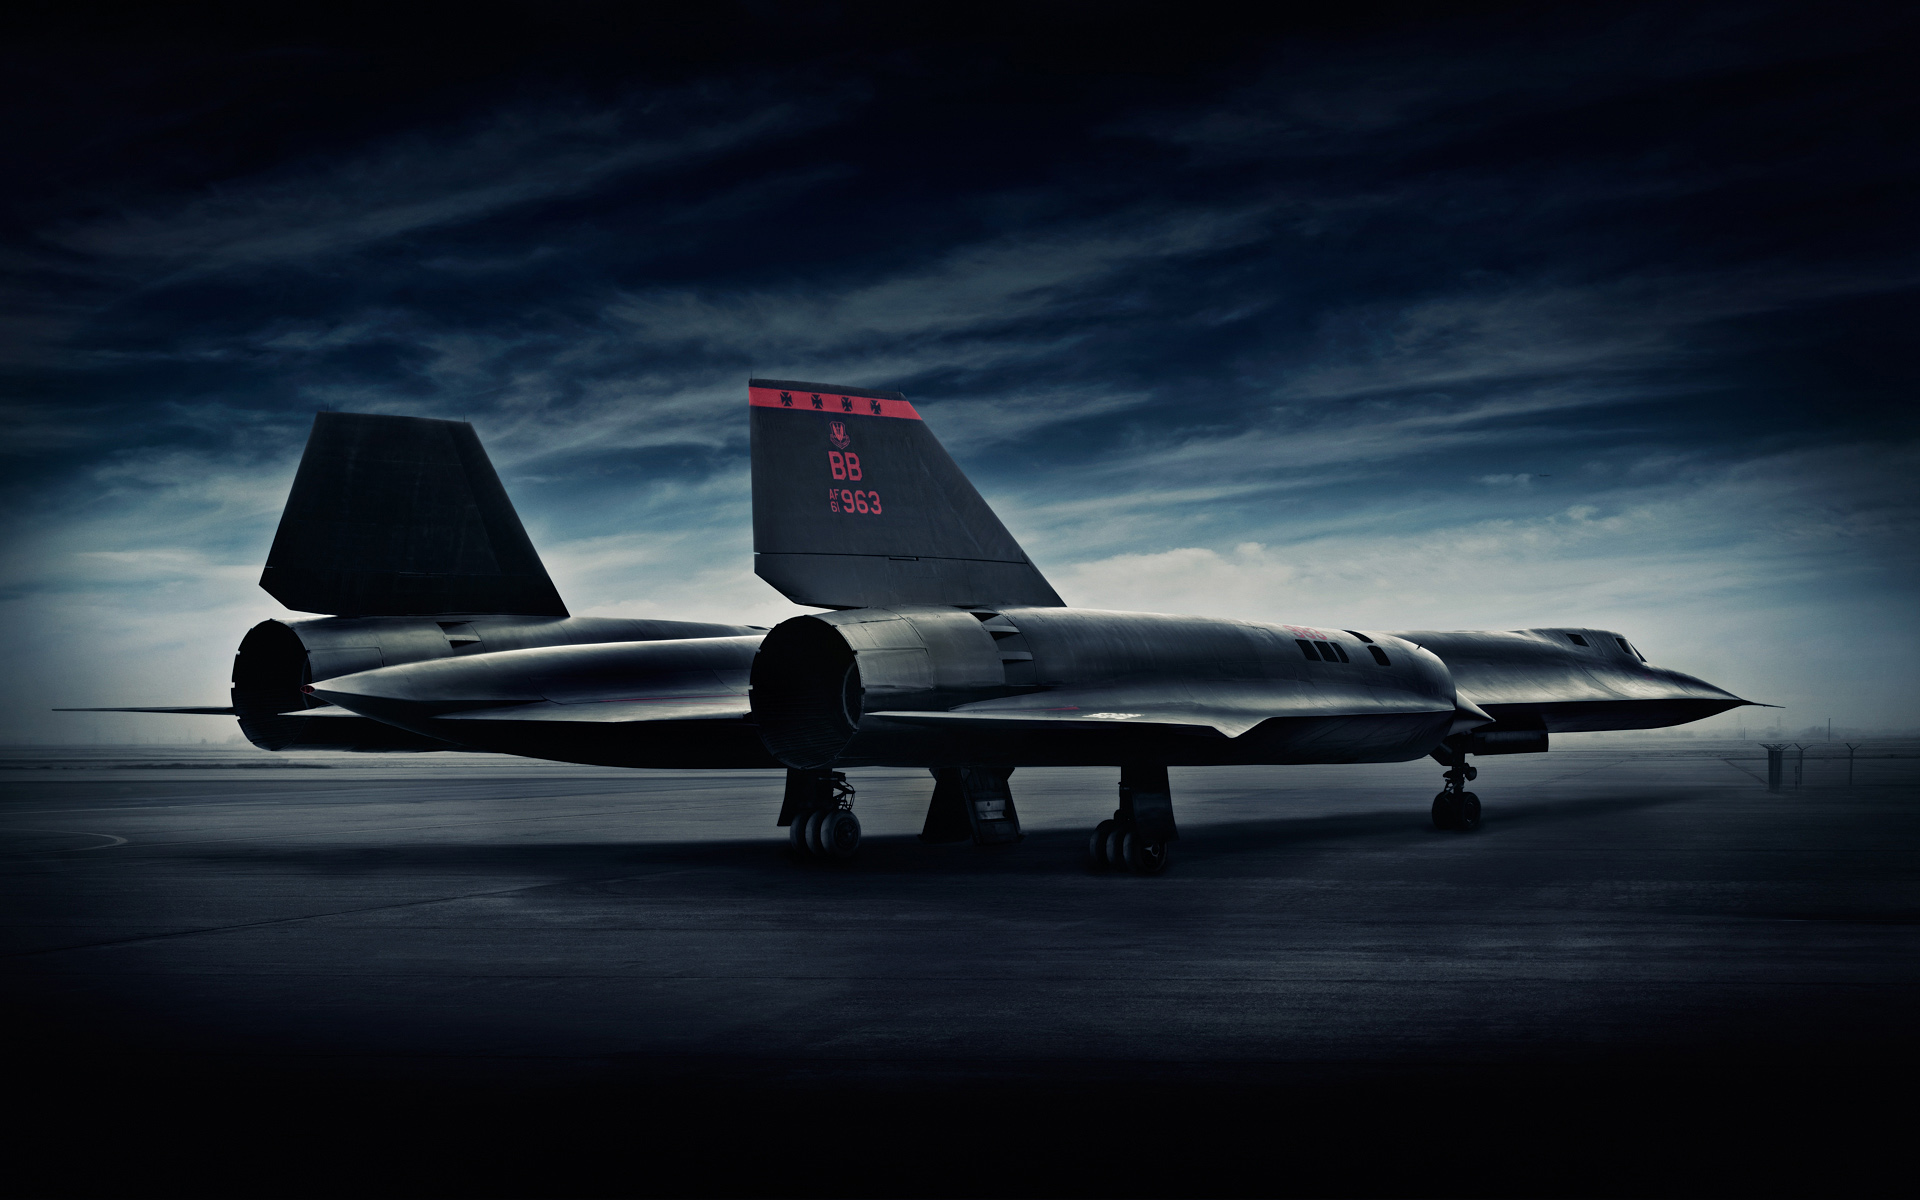 SR71 Blackbird Commercial Photographer Blair Bunting